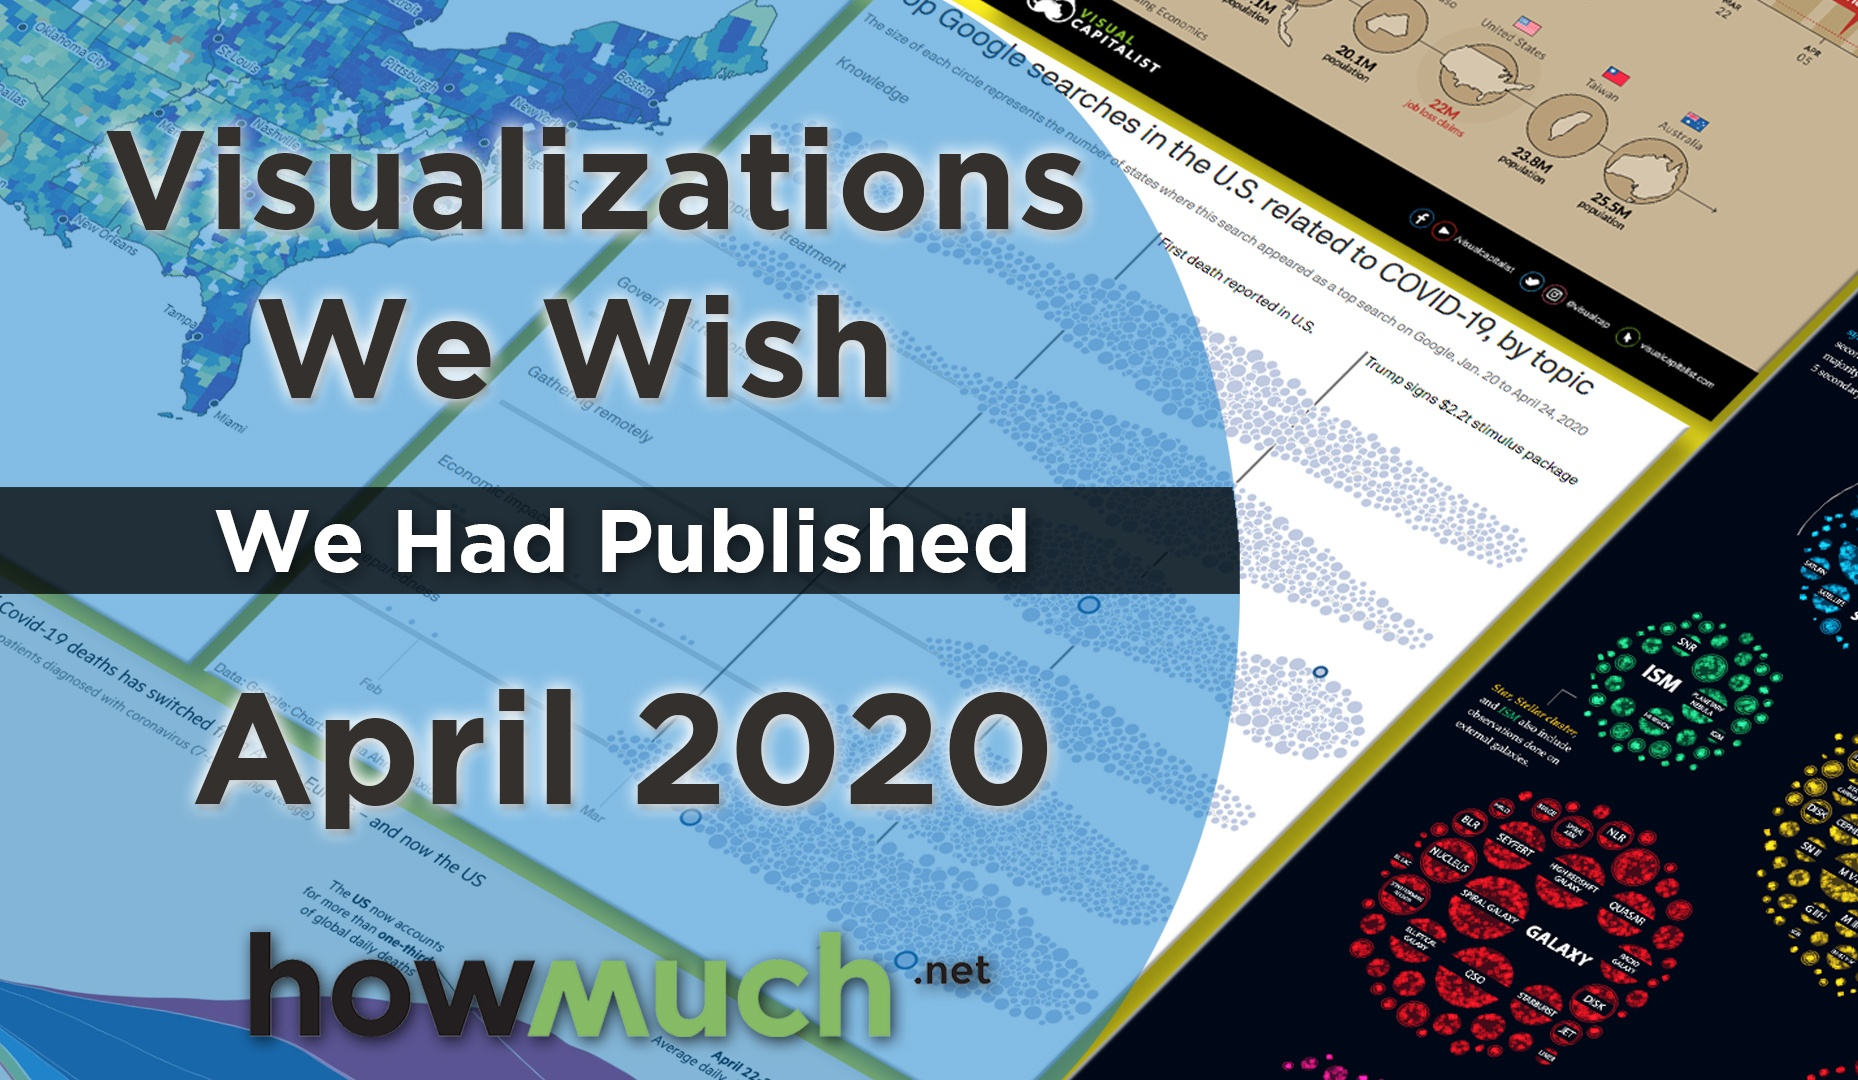 5 Visualizations We Wish We Had Published in April 2020